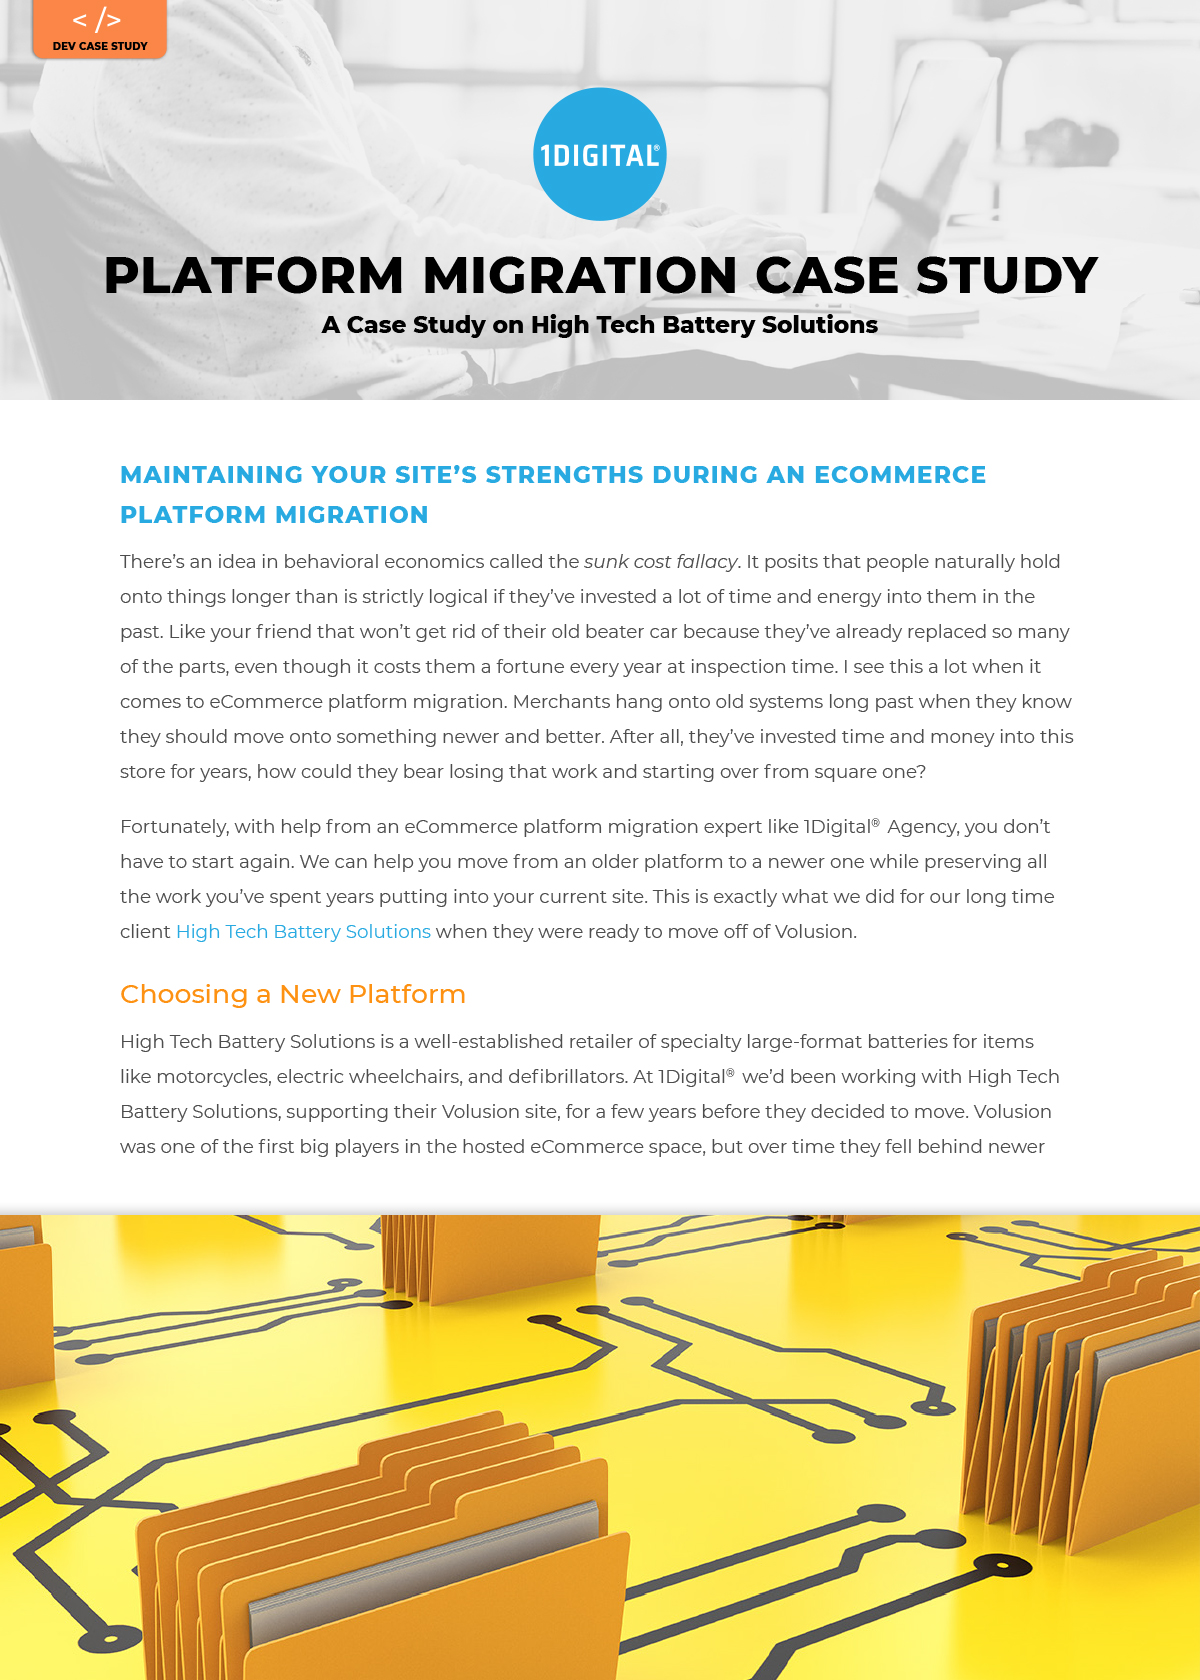 Maintaining Your Site's Strengths During an eCommerce Platform Migration